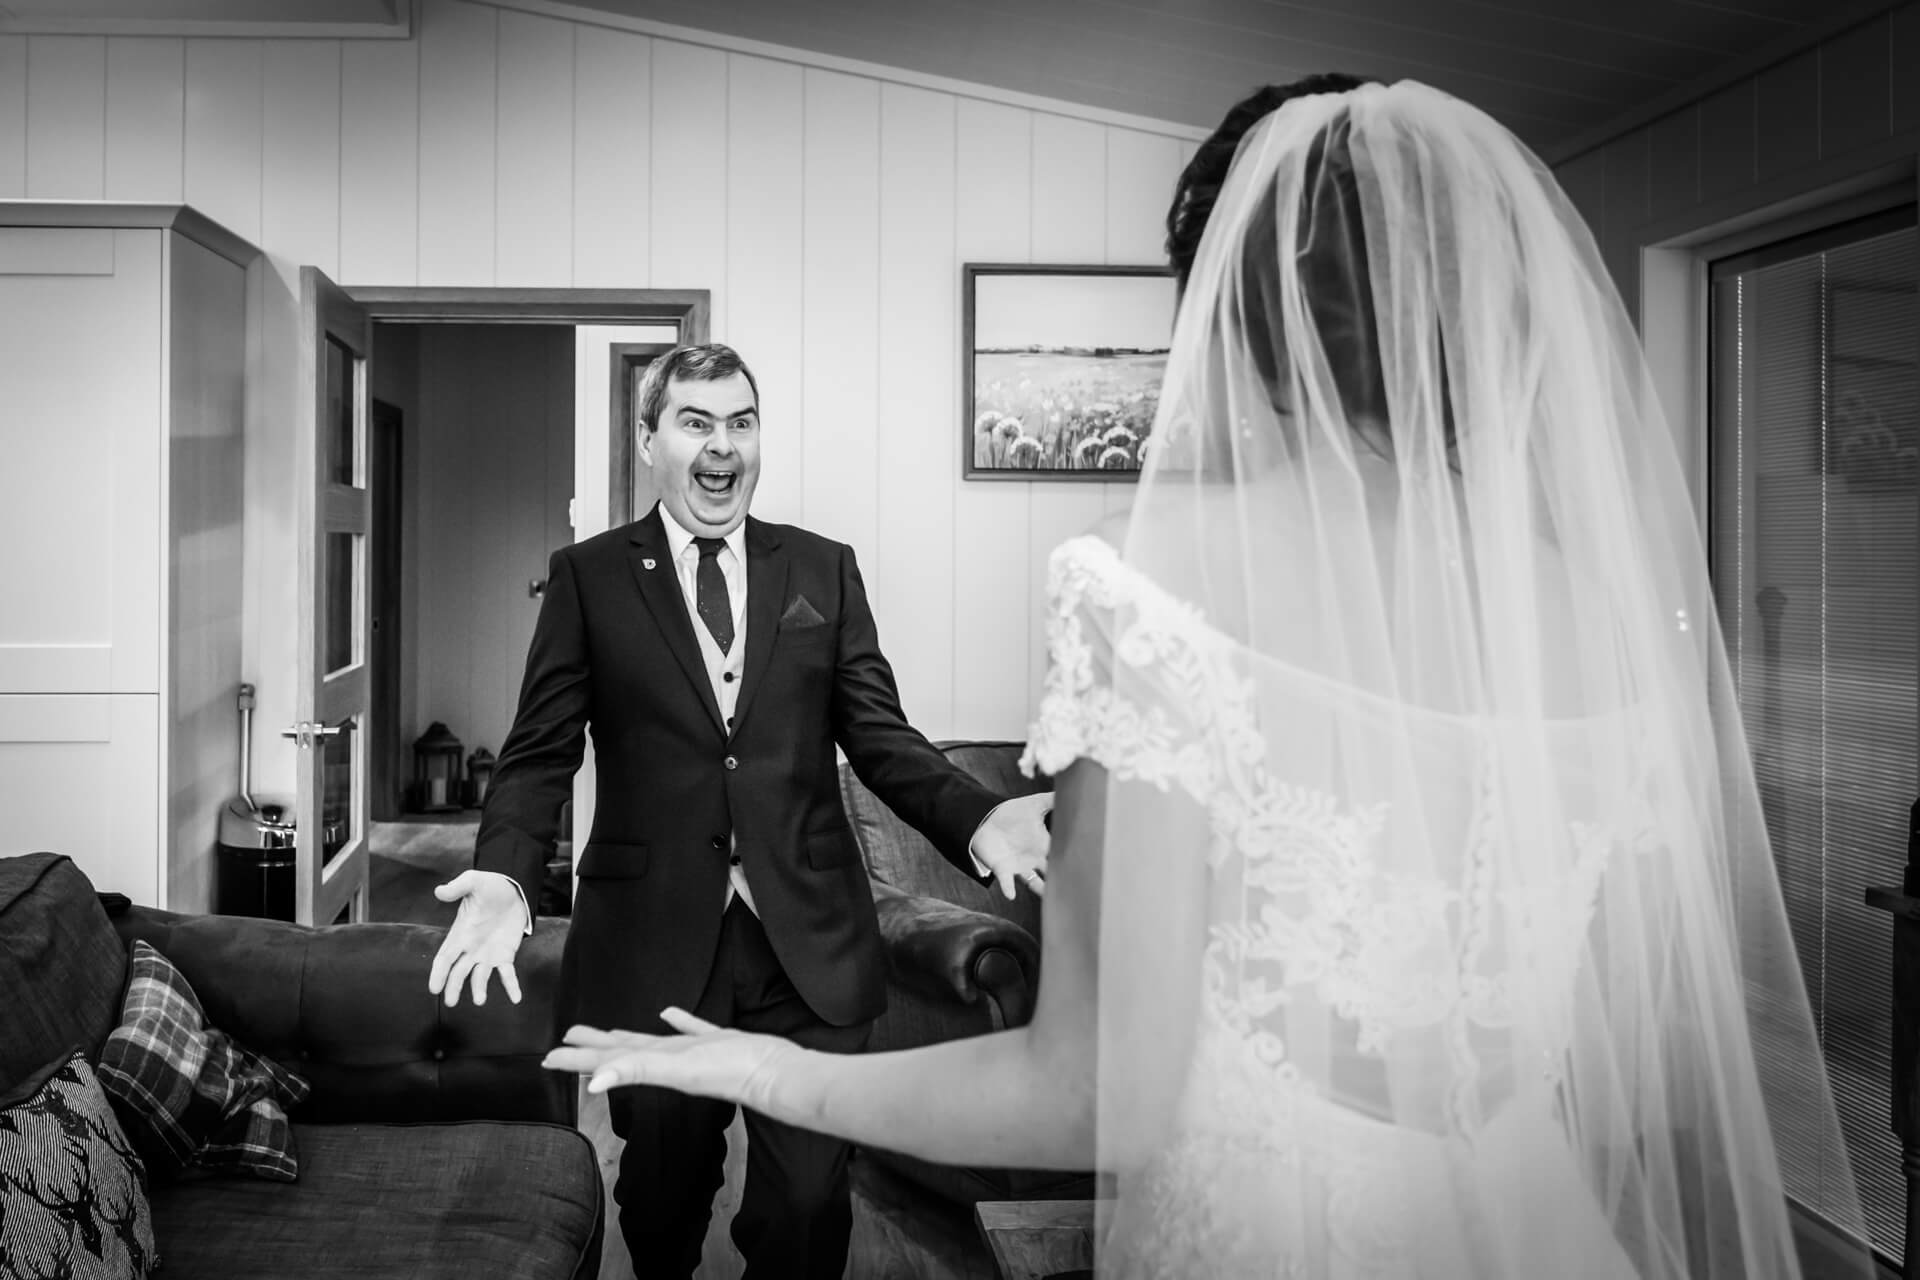 father of the bride laughing with delight on seeing the bride for the first time